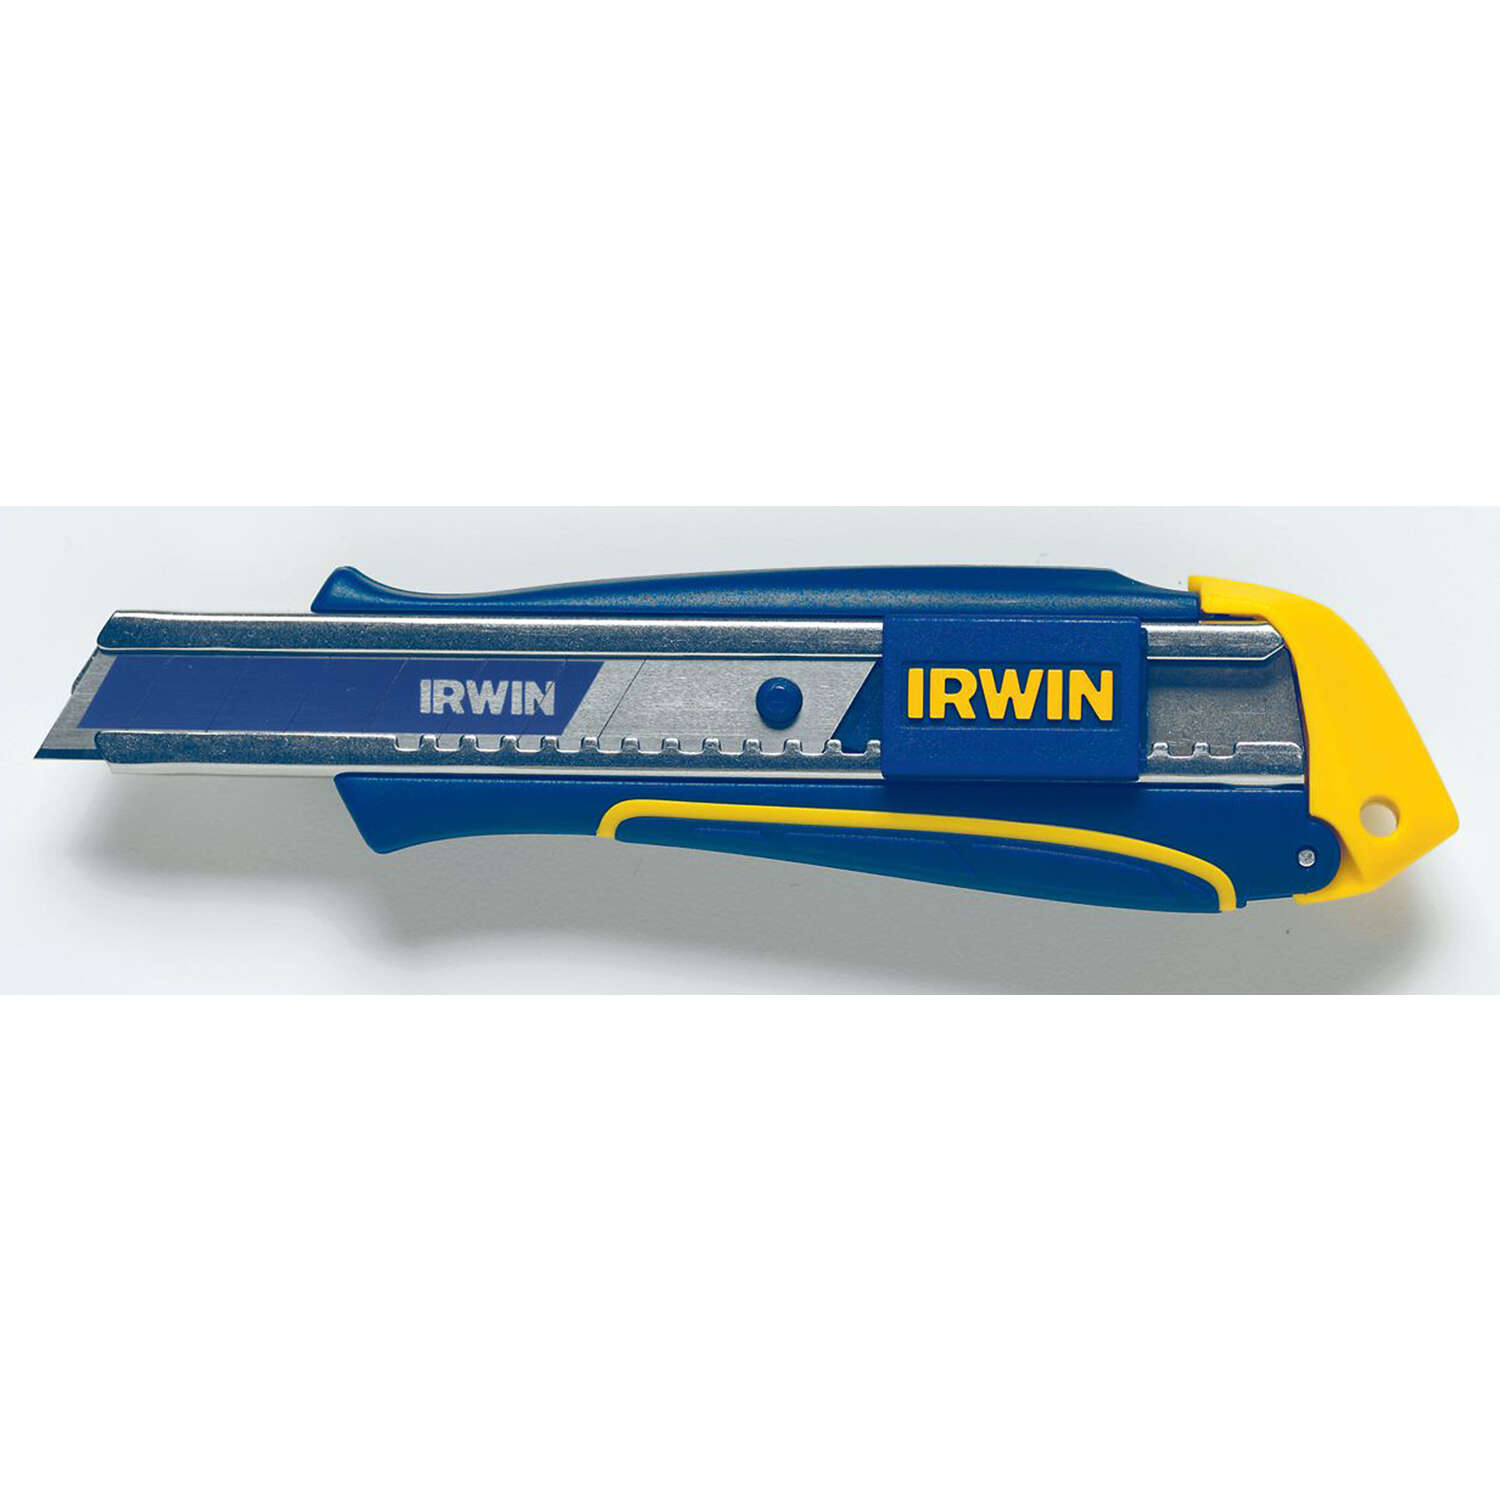 Irwin  6 in. Retractable  Snap Knife  Blue  1 pc.